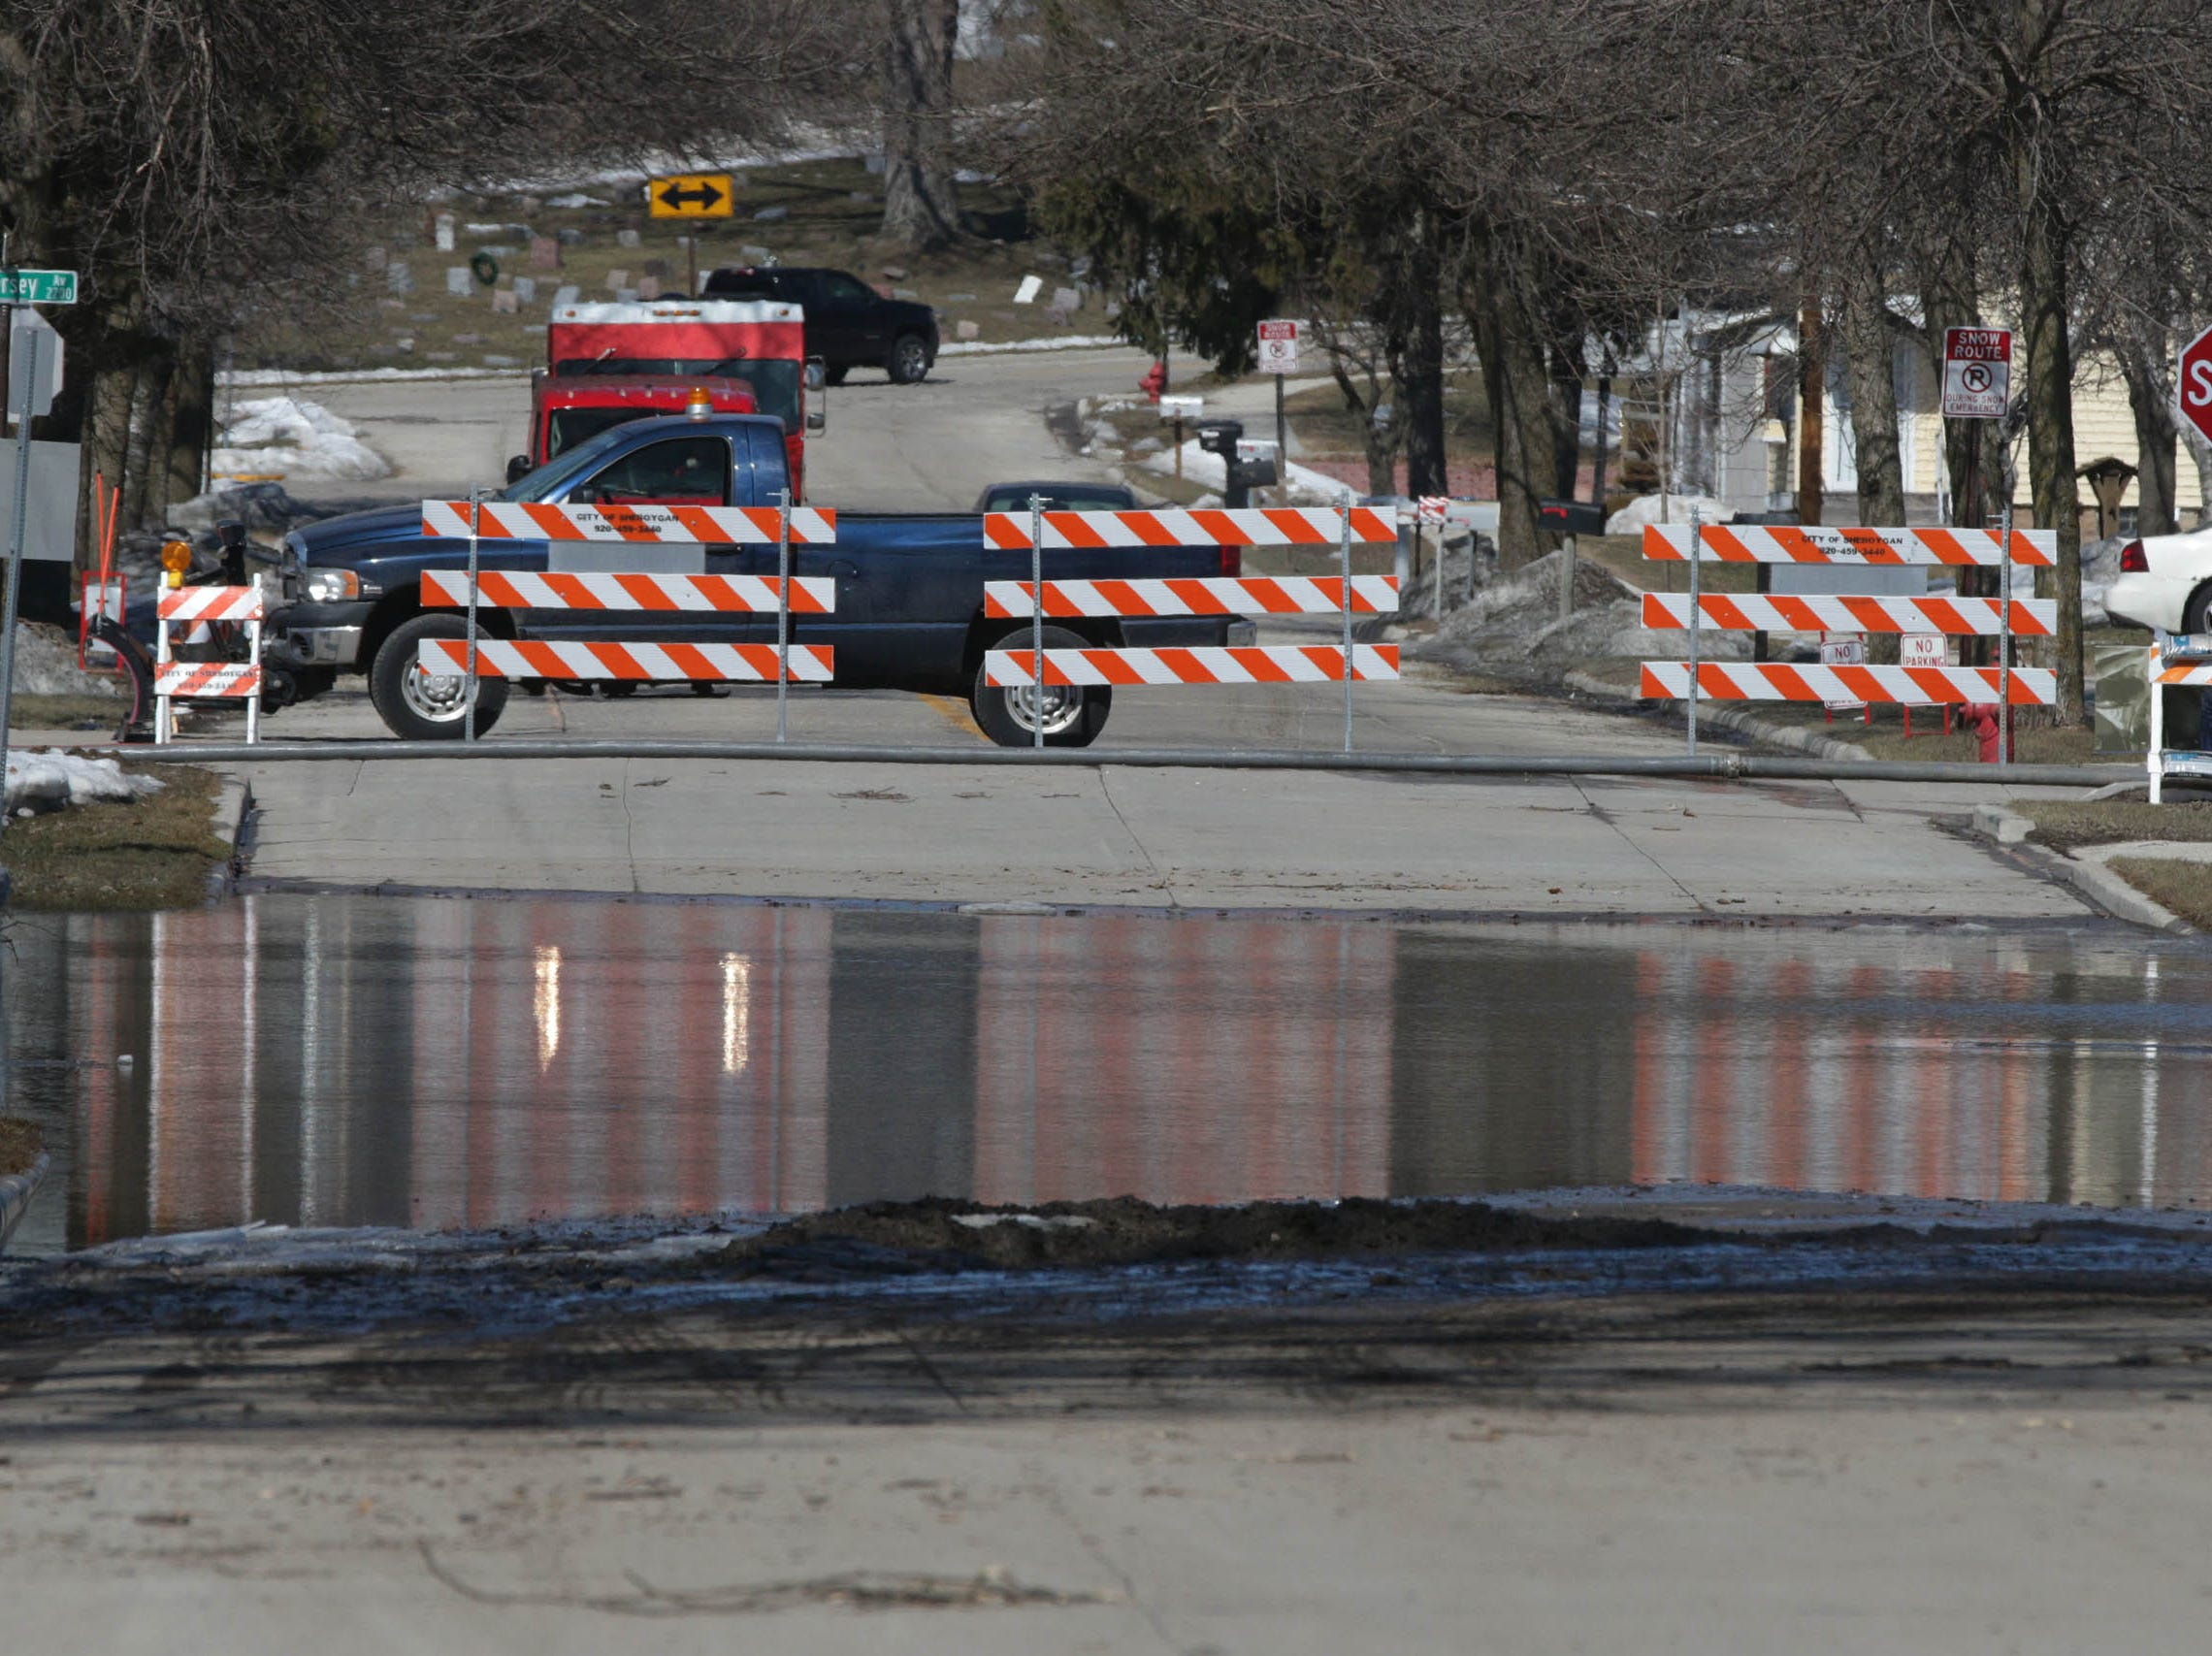 North 22nd Street is closed near New Jersey, Tuesday, March 19, 2019, in Sheboygan, Wis.